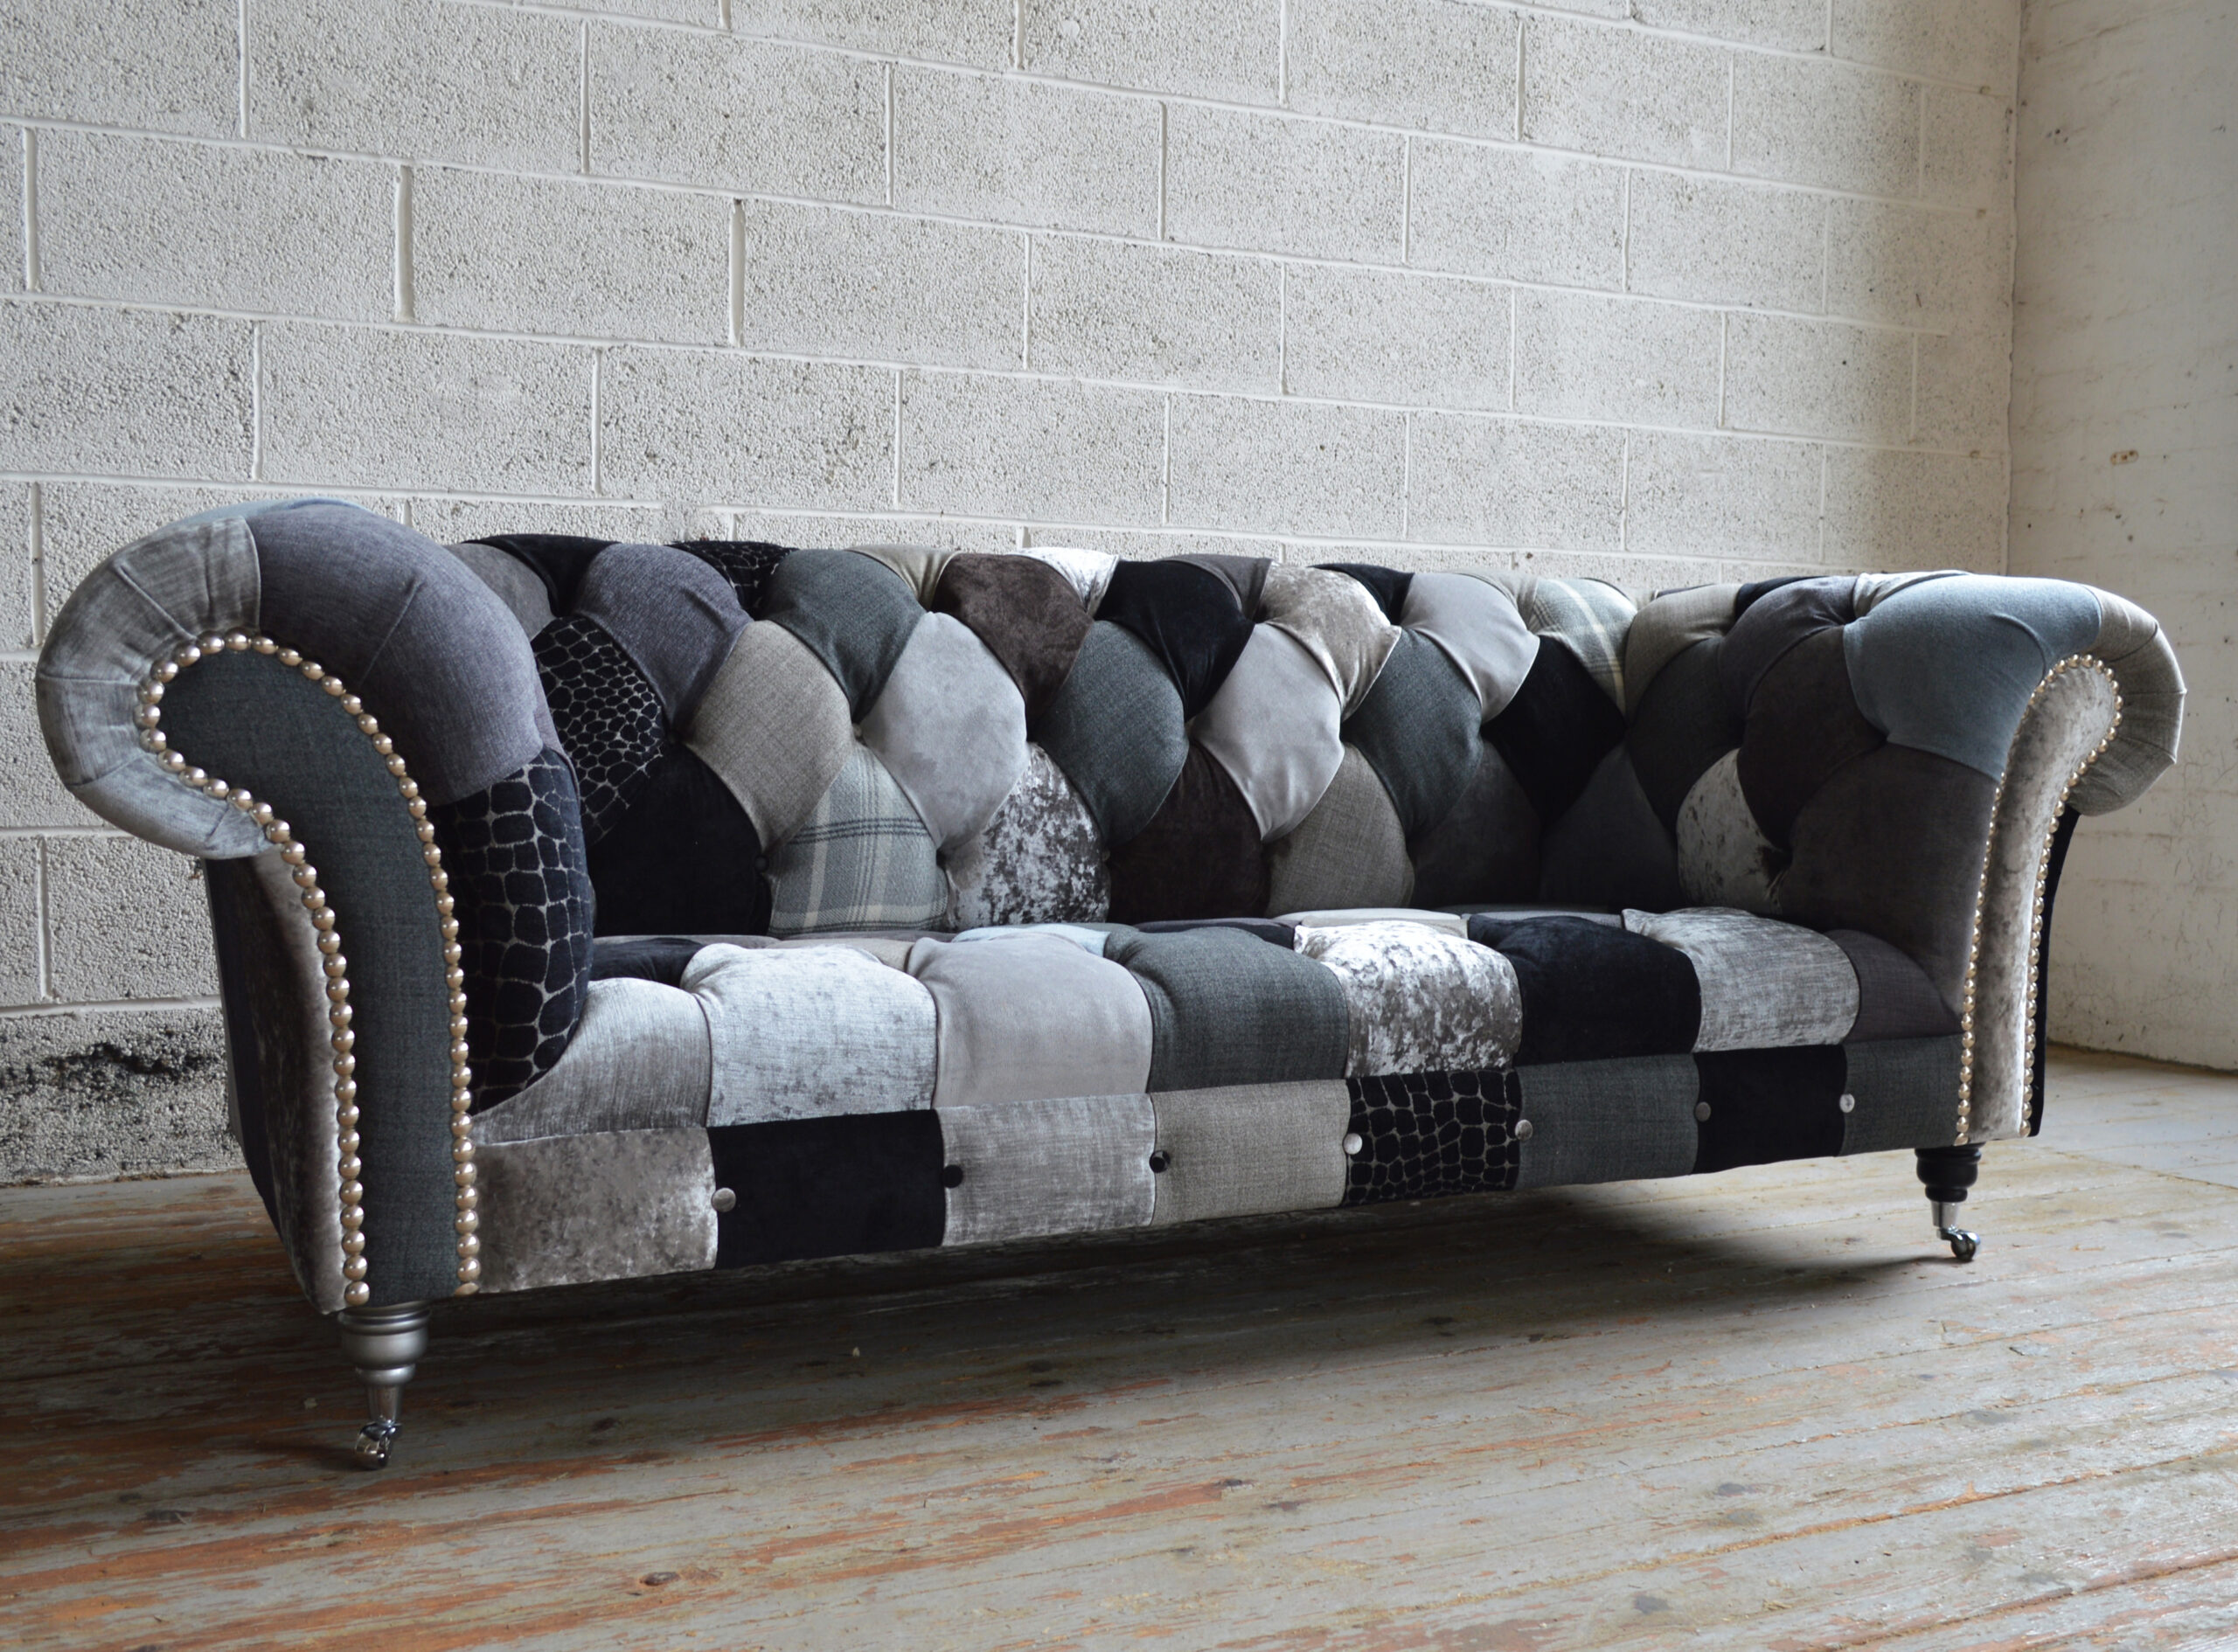 Full Size of Where To Buy Patchwork Sofa Cover Couch Dfs Fabric Diy Furniture Covers Chesterfield Bed Amazon Grey Design Gumtree Informa Home 3 2 1 Sitzer Mit Led Sofa Sofa Patchwork